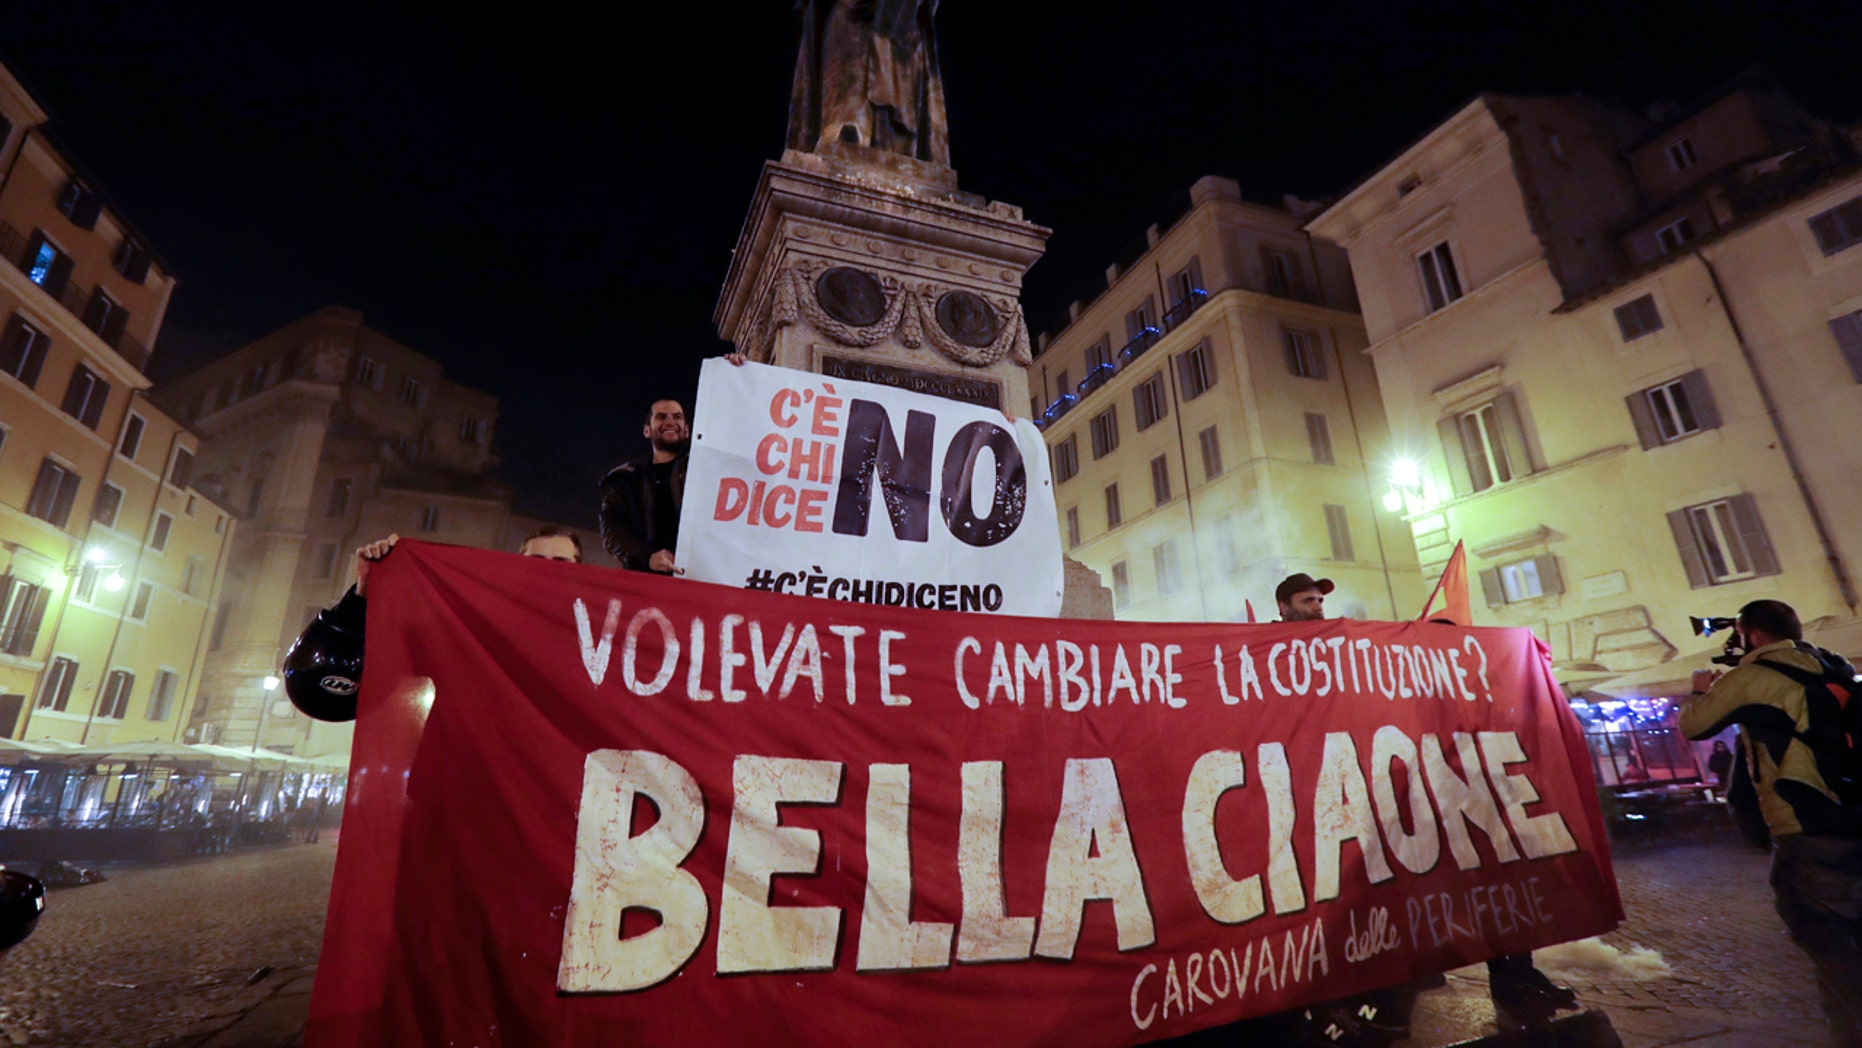 Anti-referendum militants gather in downtown Rome after Italian Premier Matteo Renzi conceded defeat in a constitutional referendum and announced he will resign in Rome, early Monday, Dec. 5, 2016.